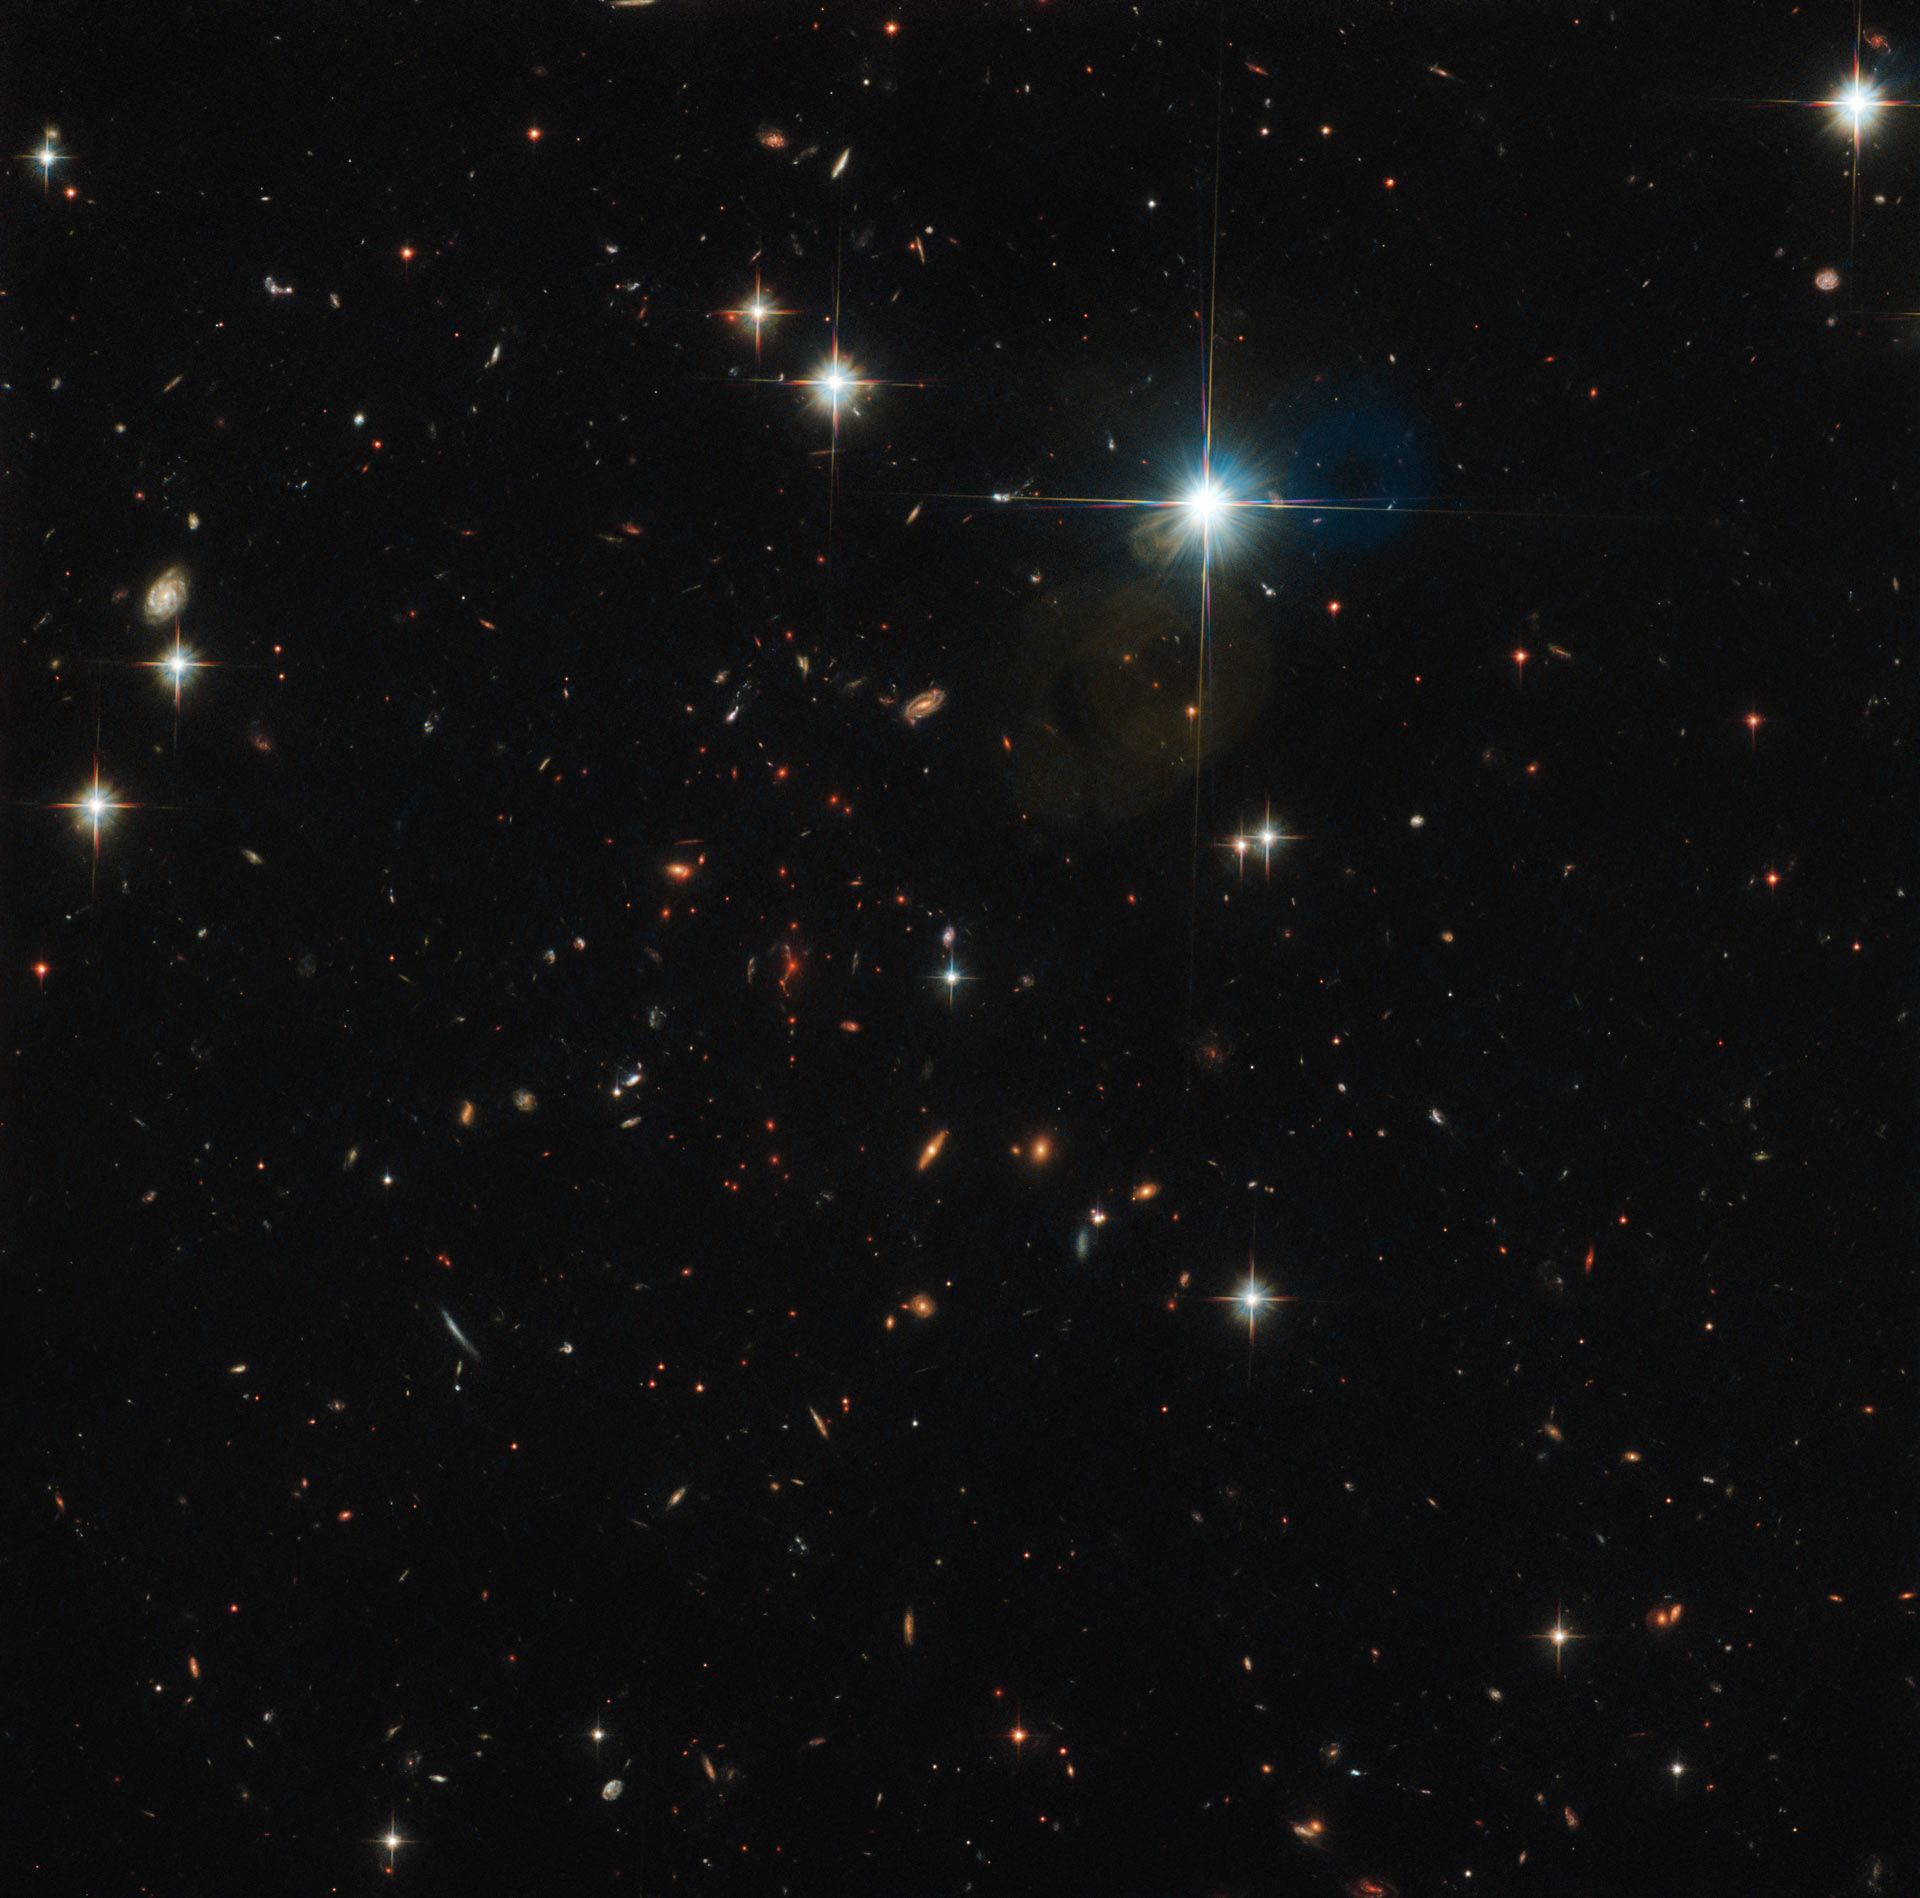 hubble sees extremely distant